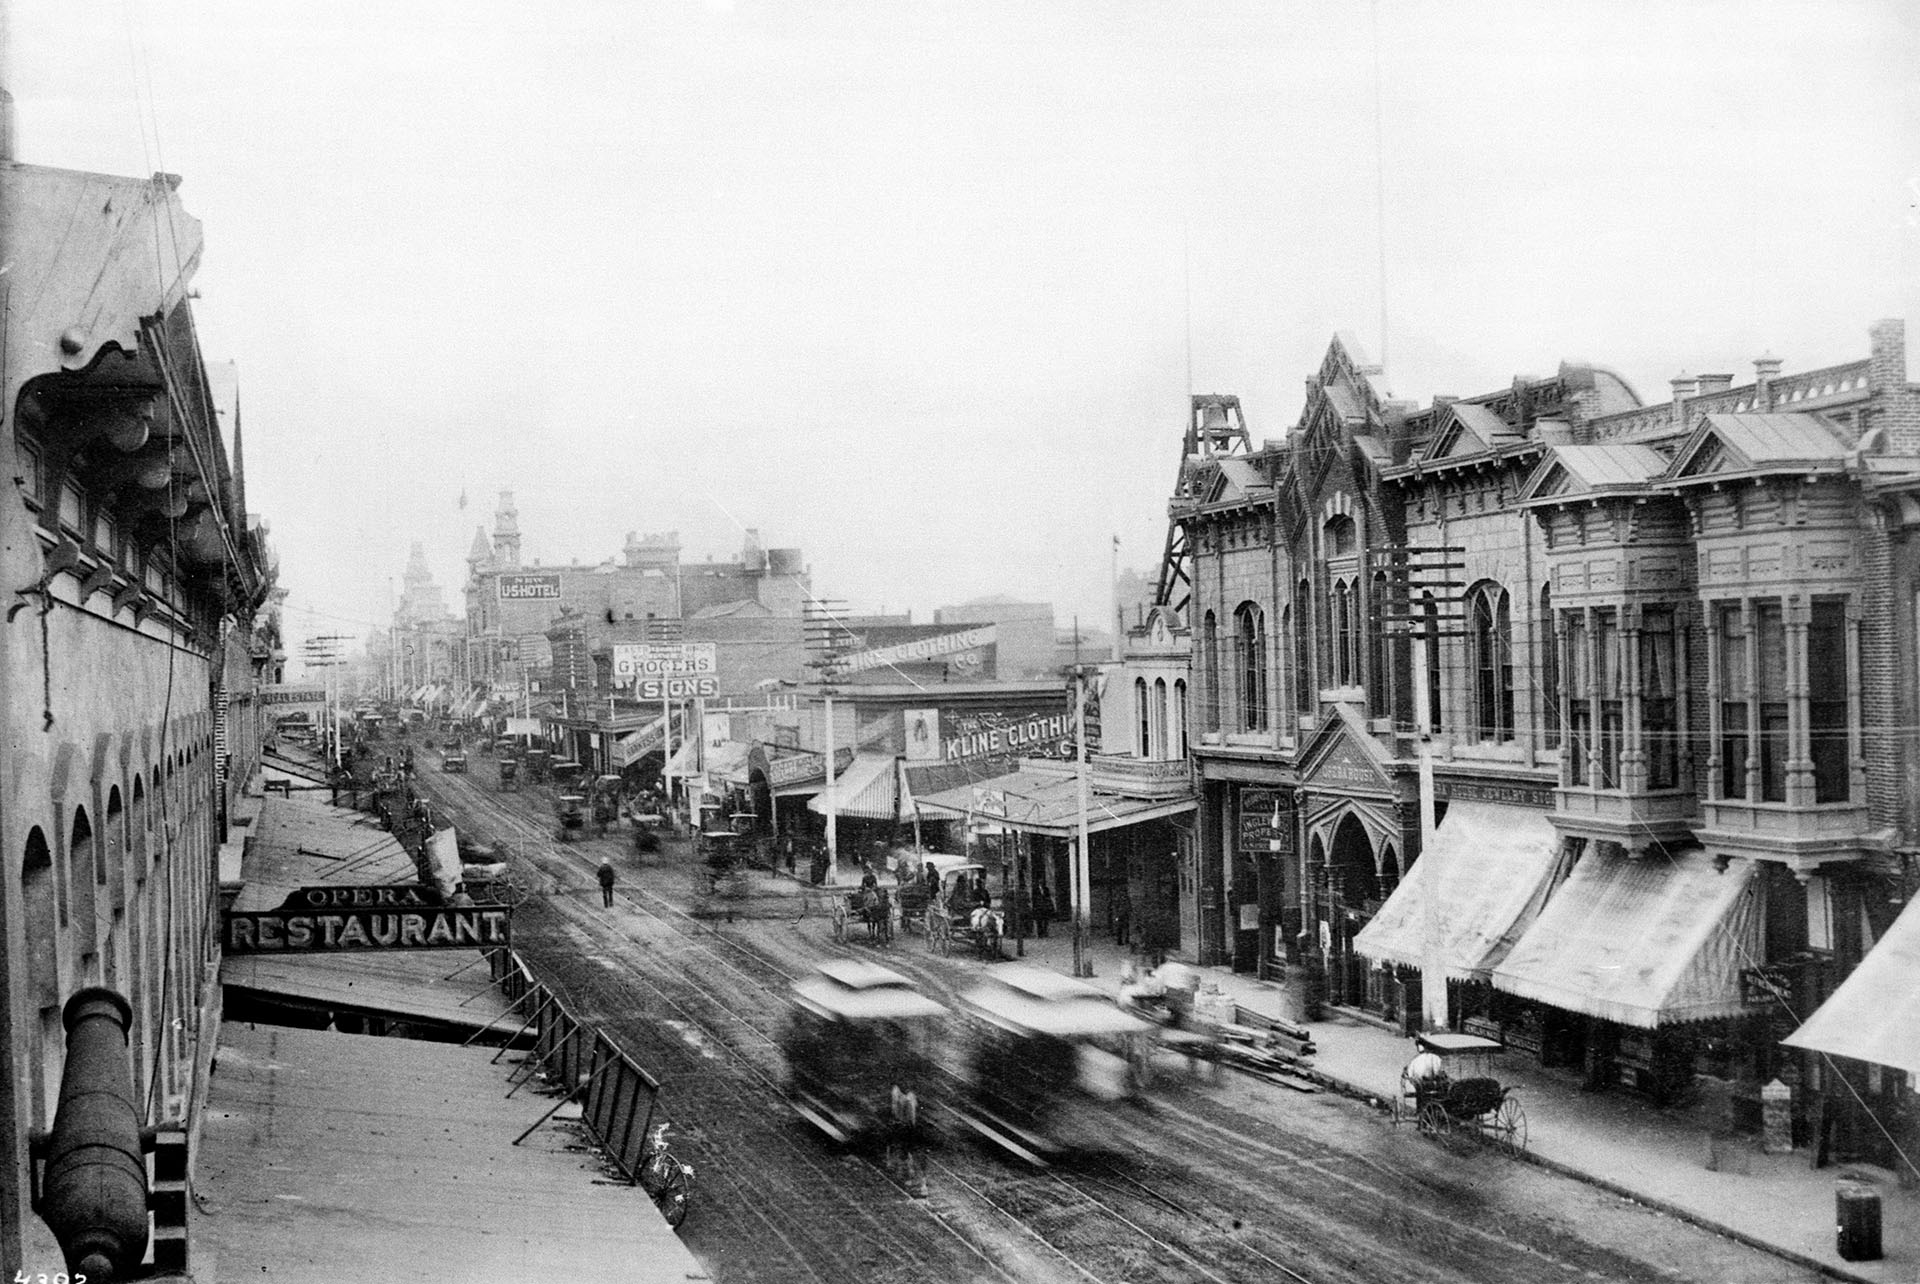 Two horsecars pass each other in a blur on Main Street between First and Second streets, circa 1889.